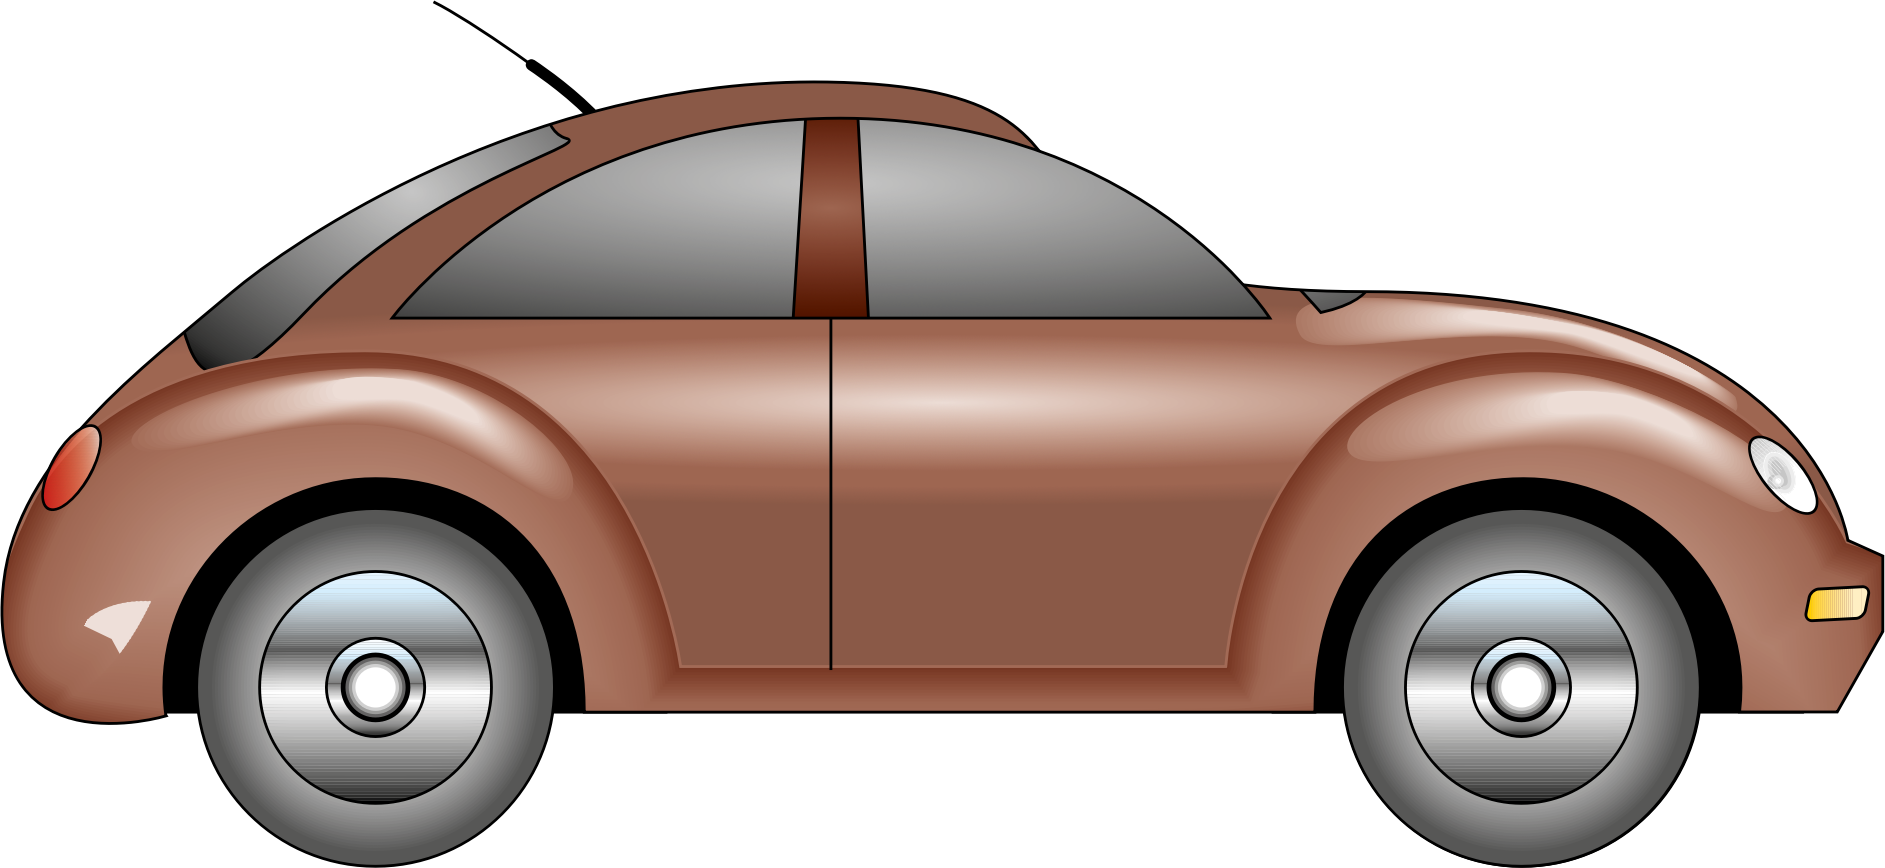 Car - Coche by baban